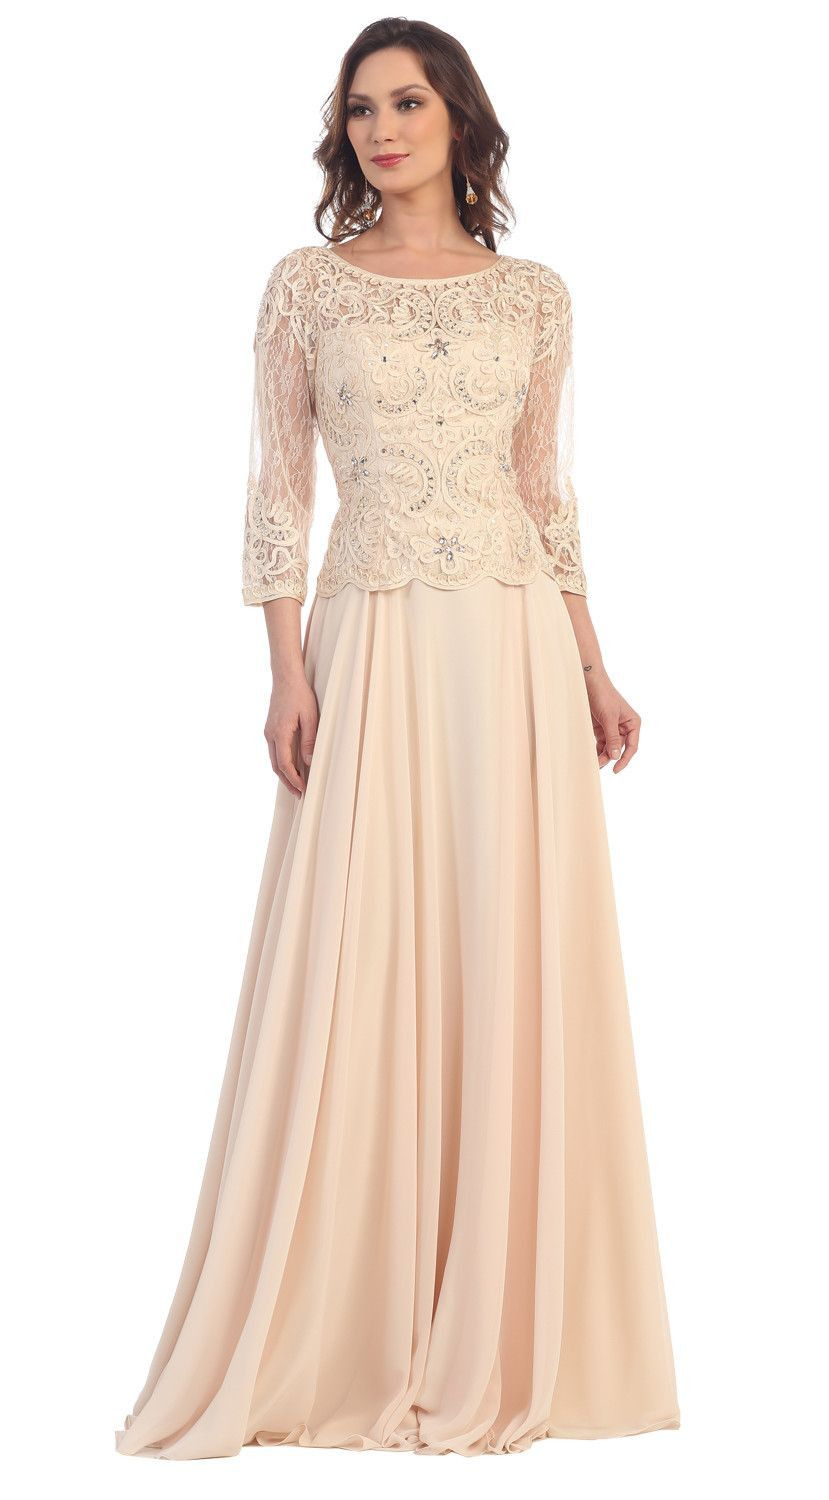 d9b46bca4dace Mother of the Bride Long Dress Plus Size Formal Evening Gown Groom-The  Dress Outlet